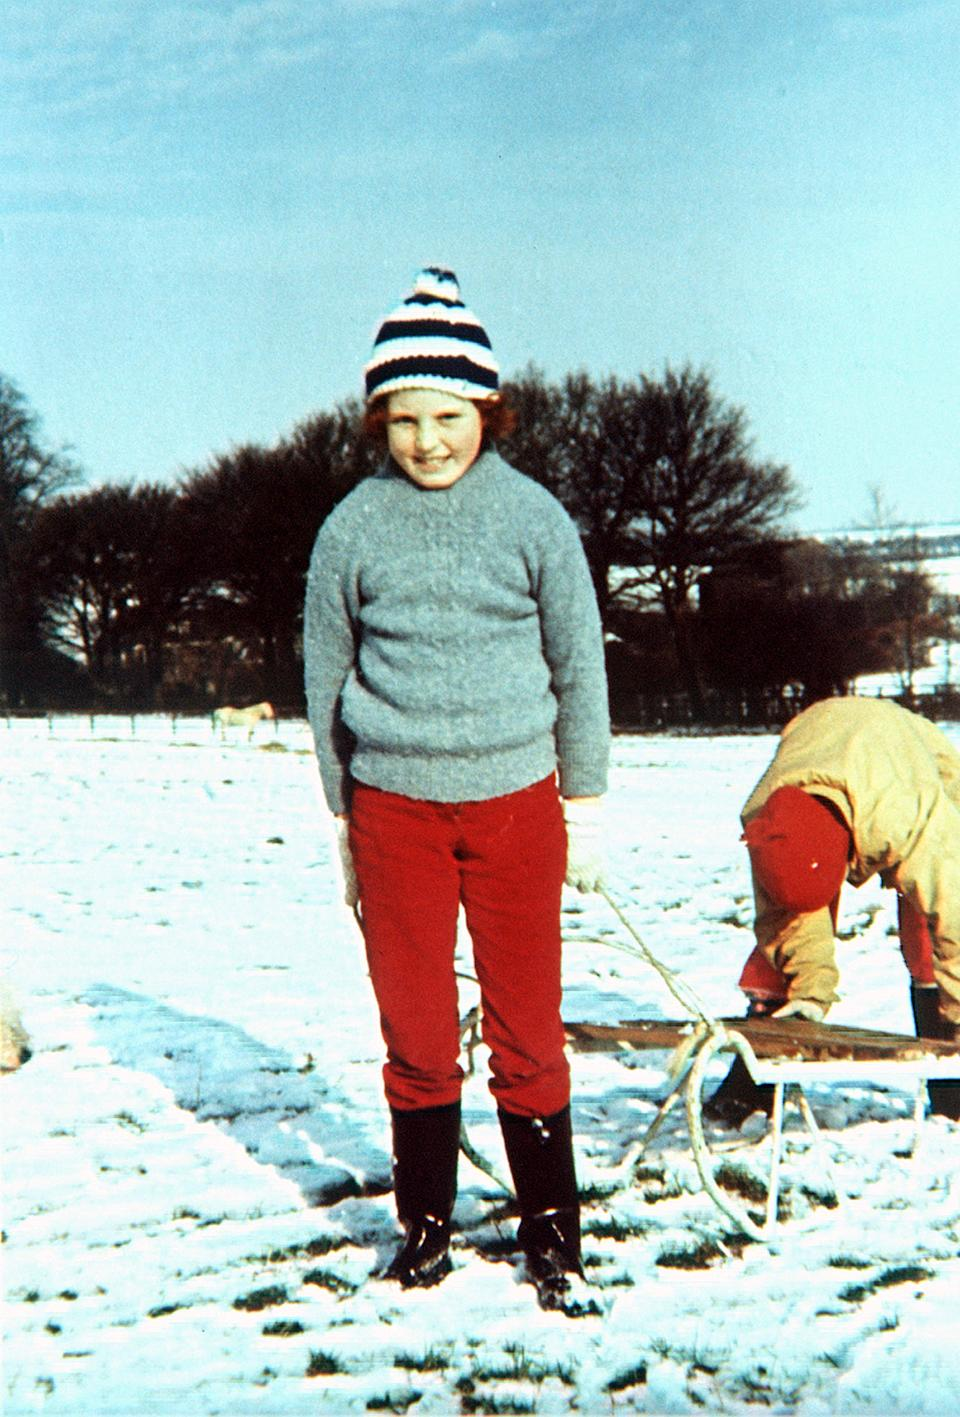 A library file picture taken from the Ferguson family album of Sarah Ferguson, The Duchess of York aged of 10 years at her home in the snow at Dummer, Hampshire.